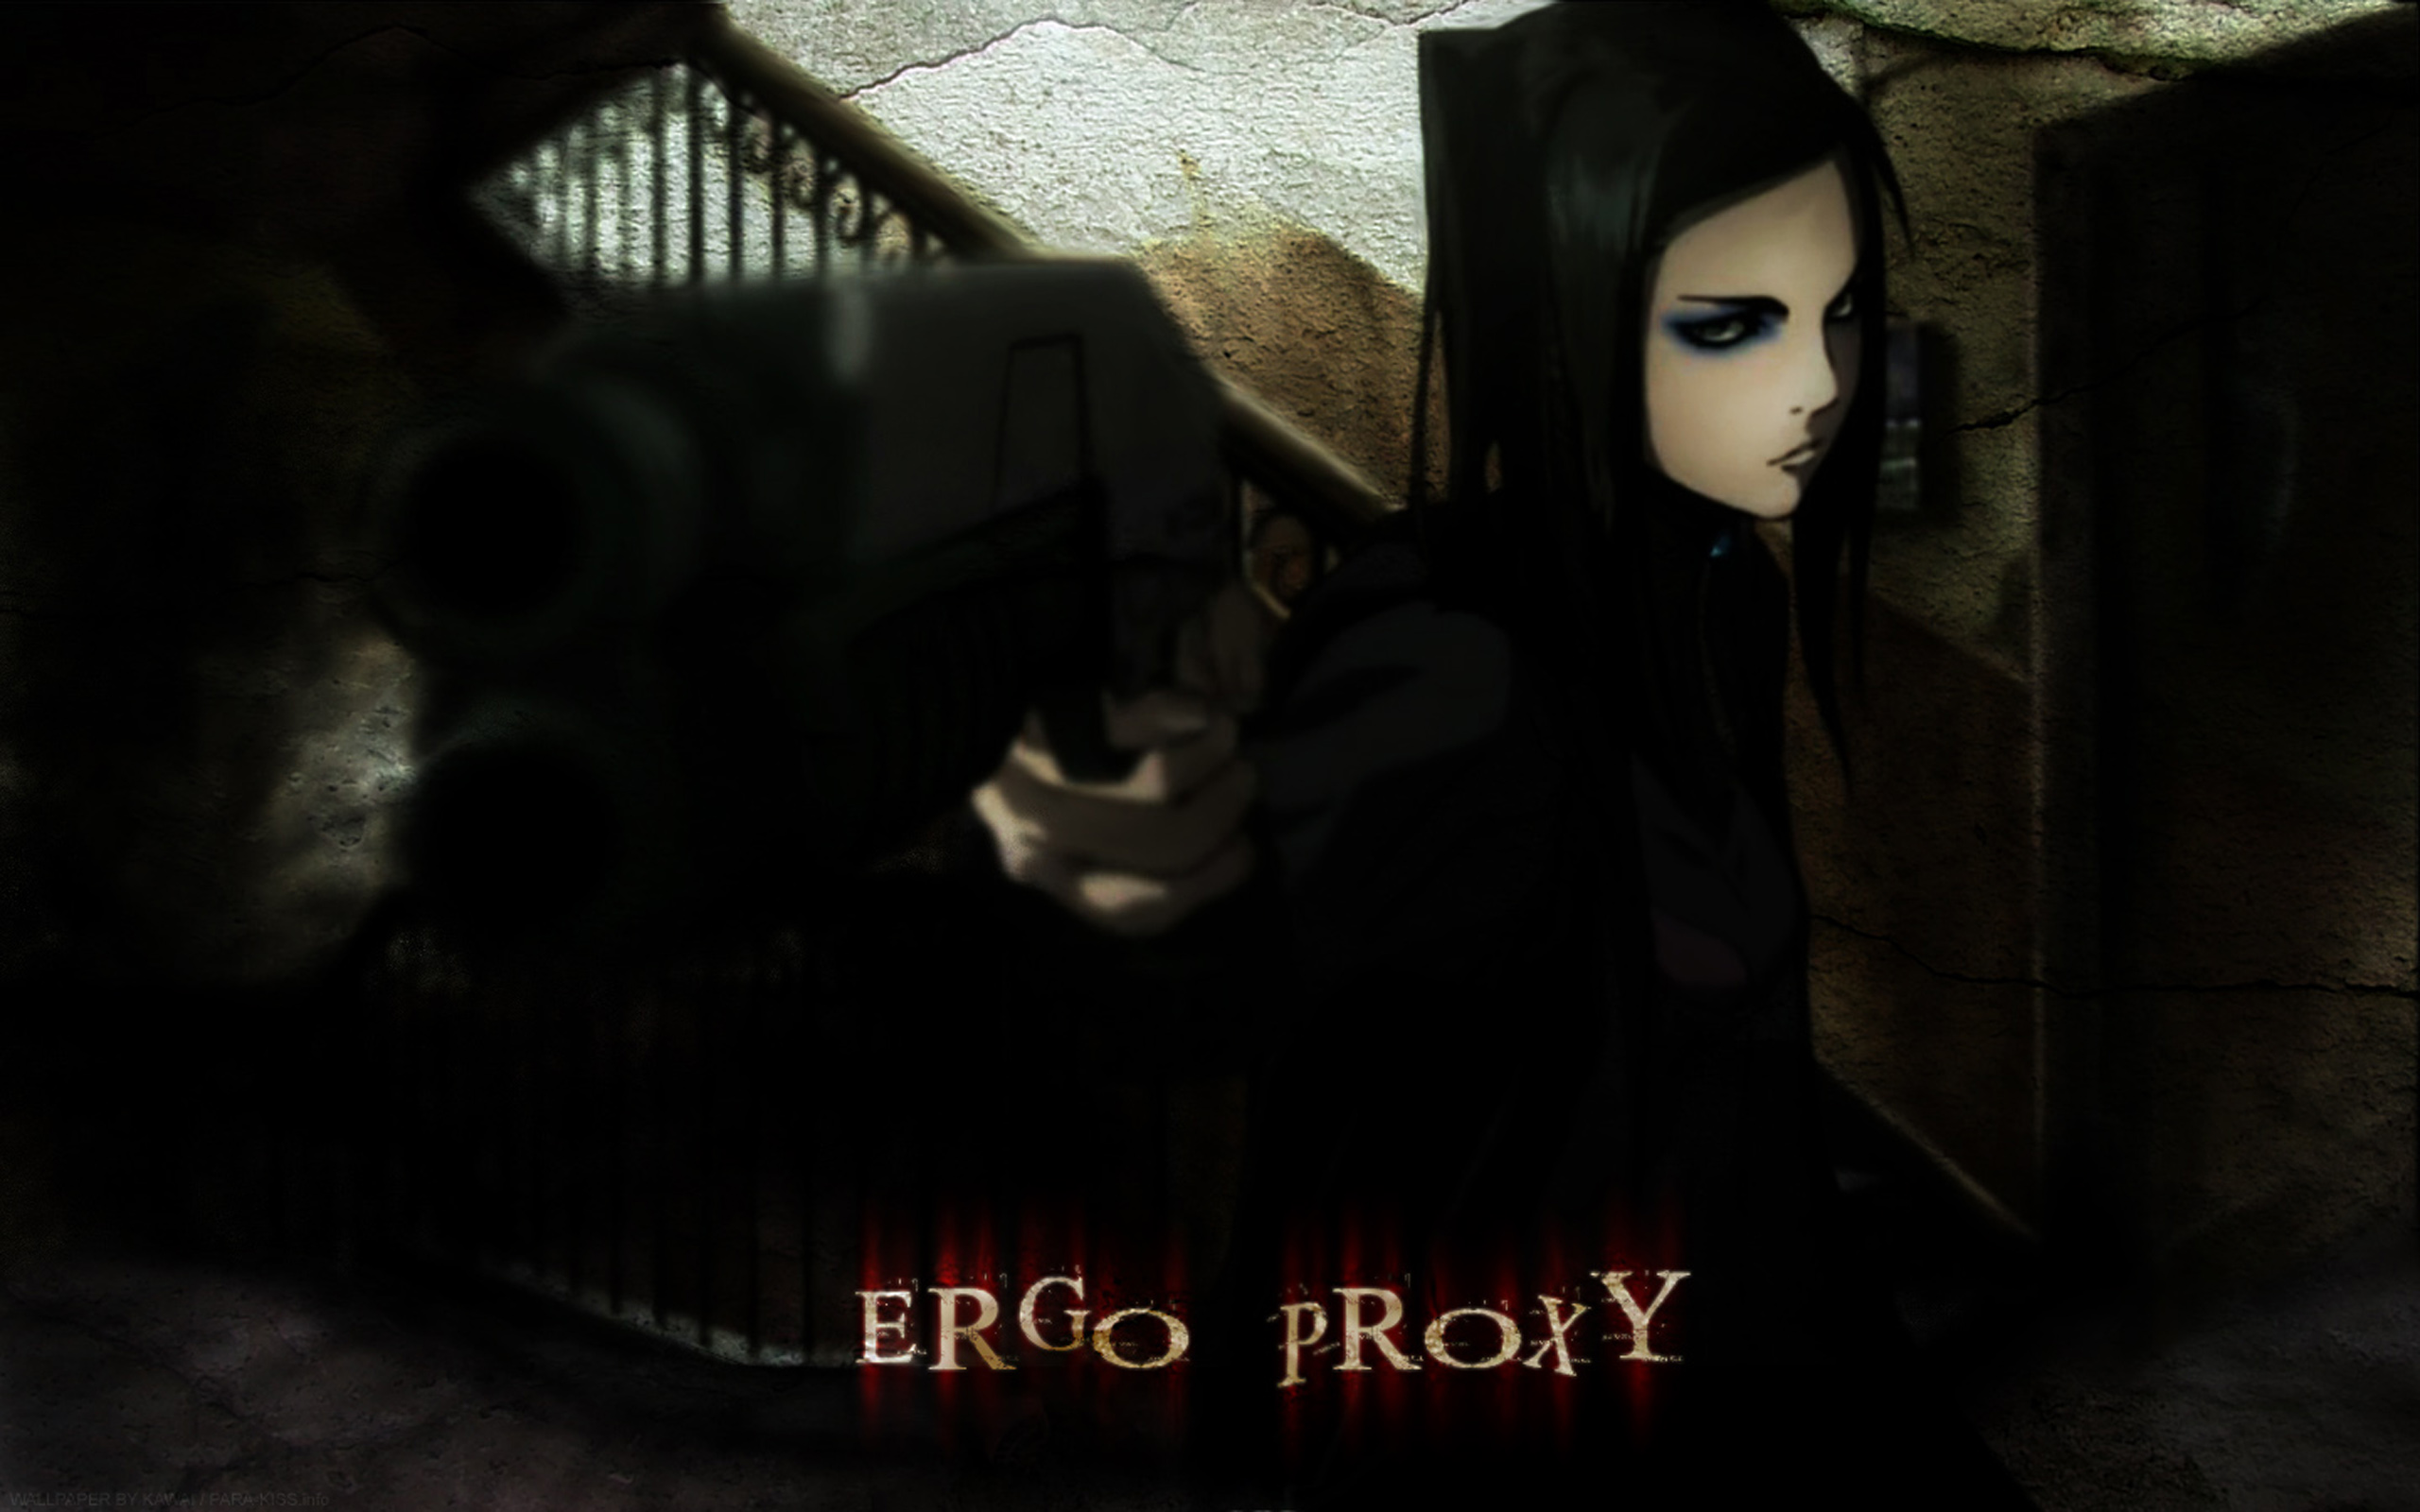 Ergo Proxy Wallpapers High Quality | Download Free